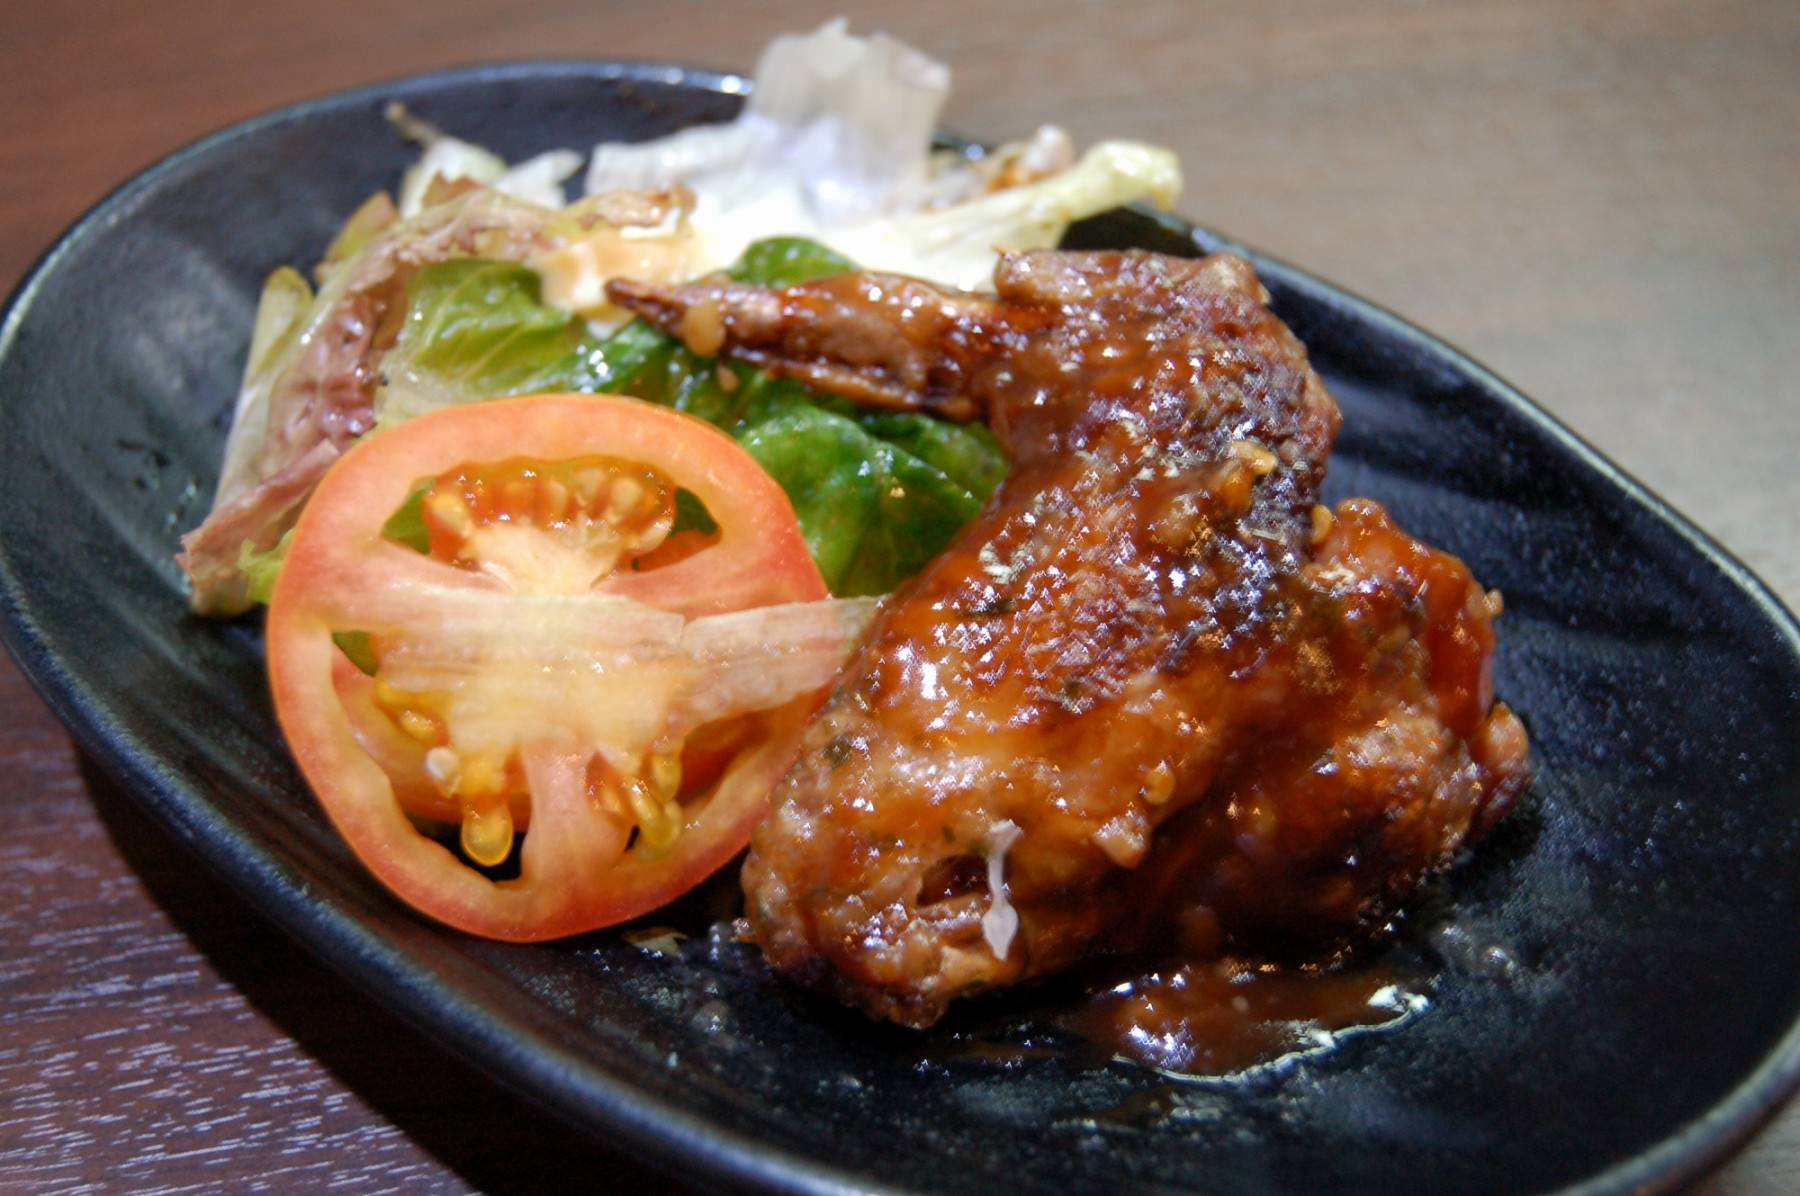 Simmered Chicken Wings with Vinegar  Soysauce (2931)